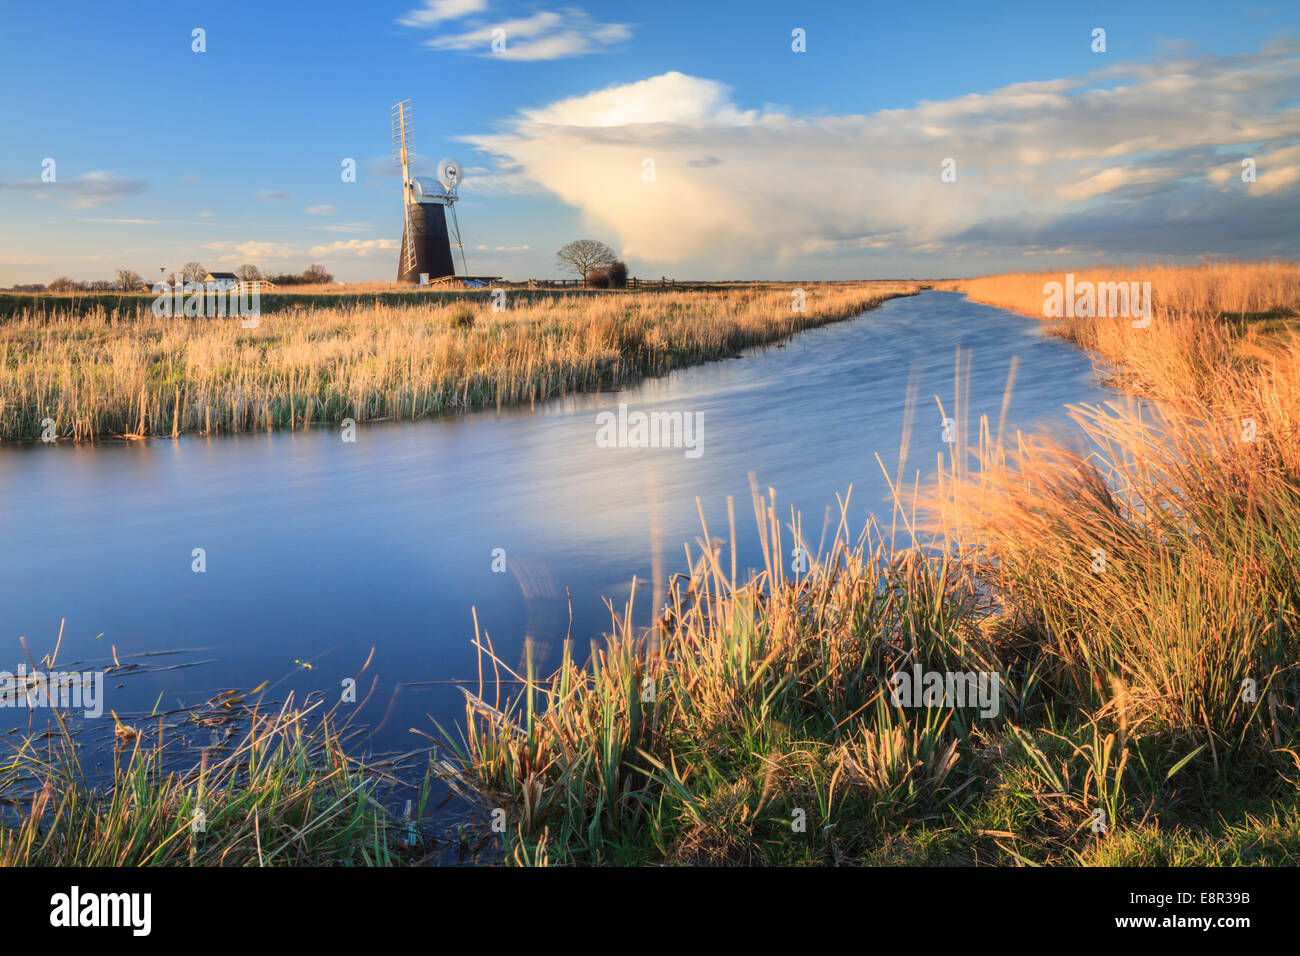 Mutton's Drainage Mill in the Broads National Park - Stock Image